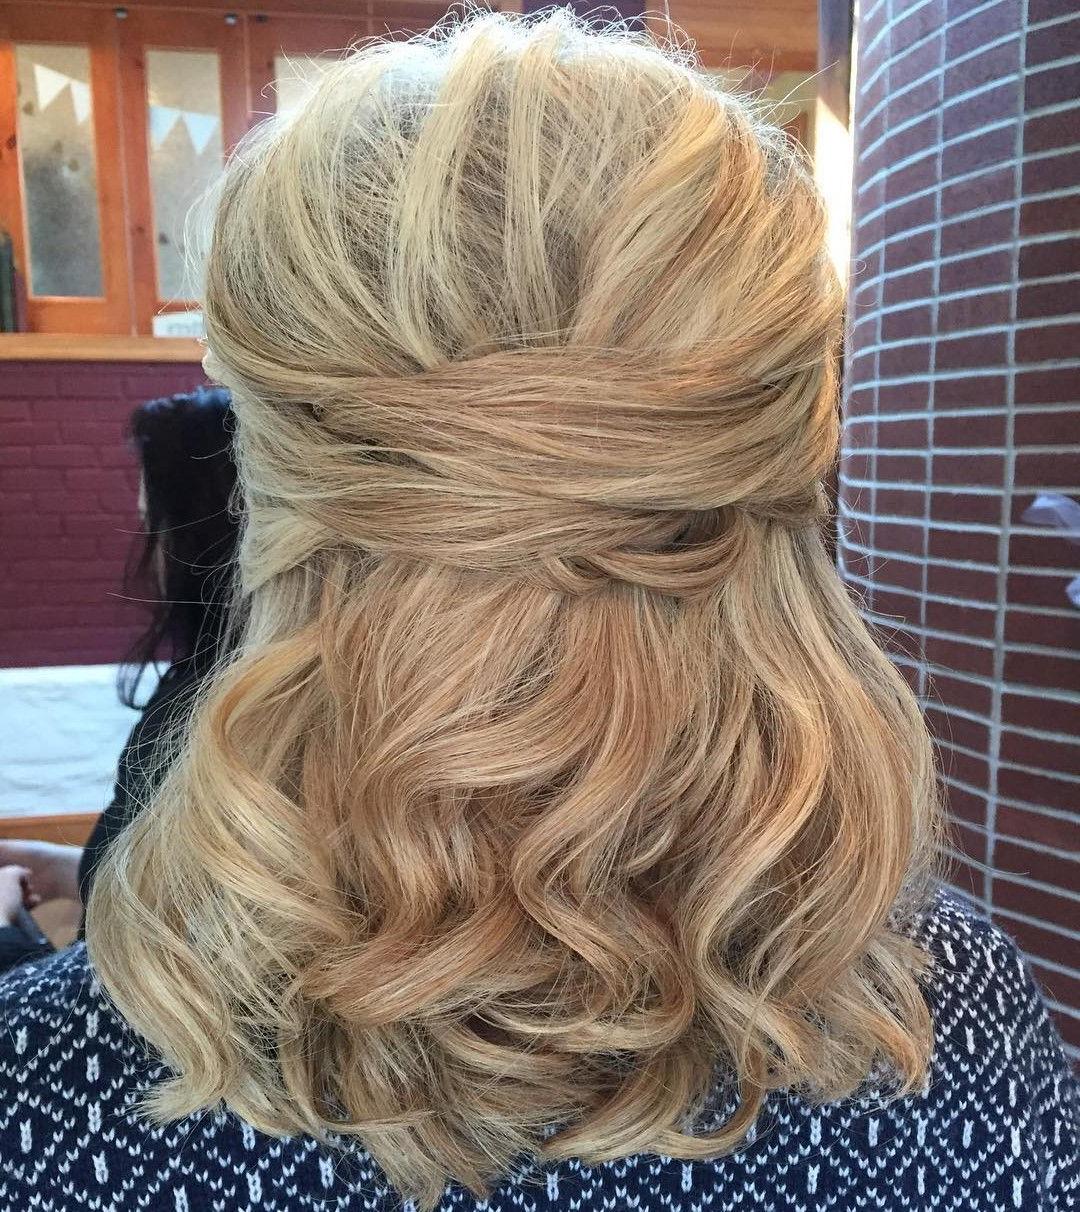 50 Ravishing Mother Of The Bride Hairstyles In (View 11 of 20)